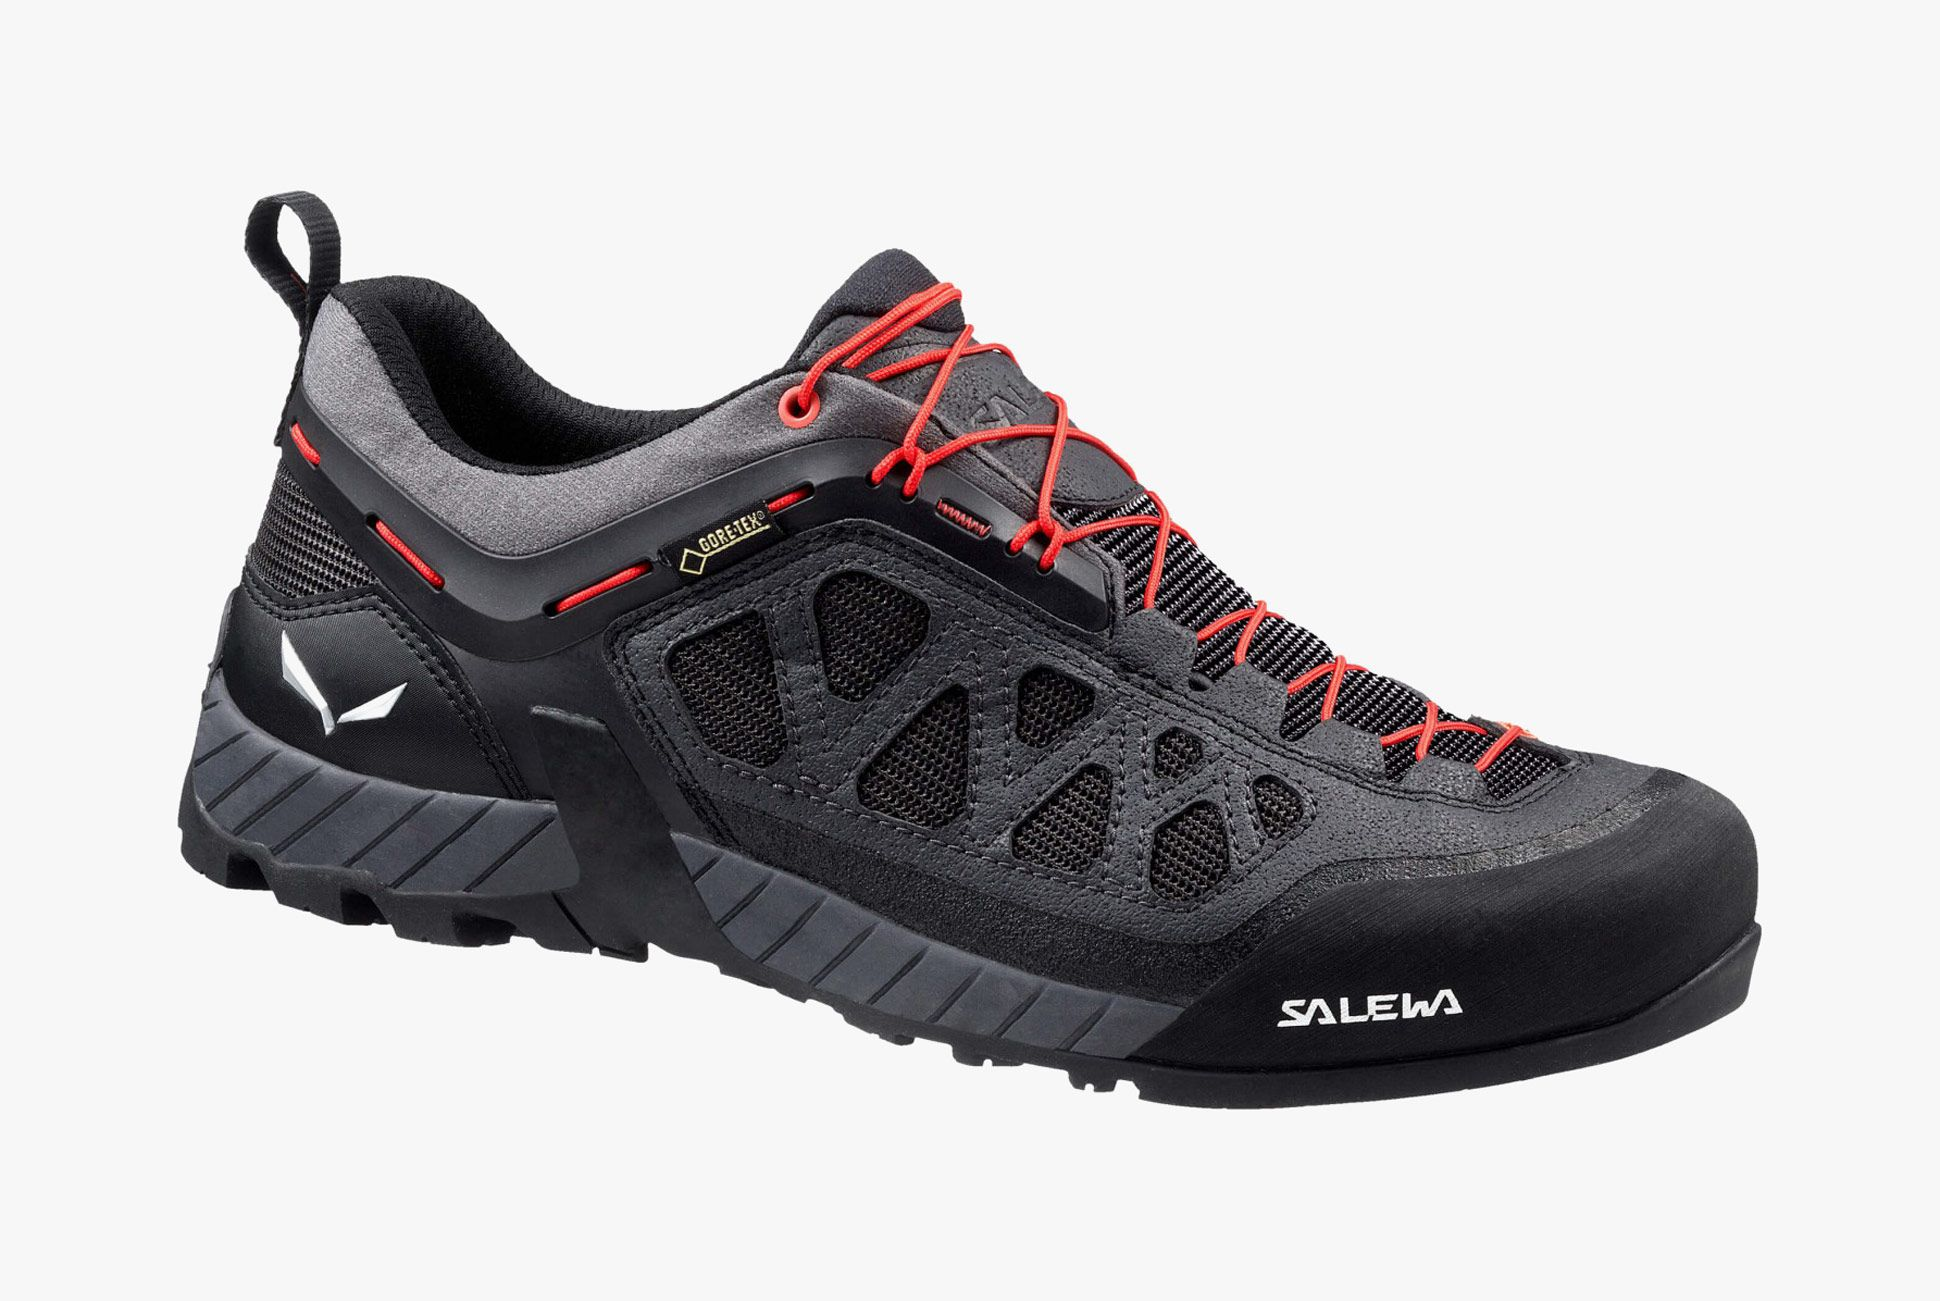 Upgrade Your Hiking Footwear on the